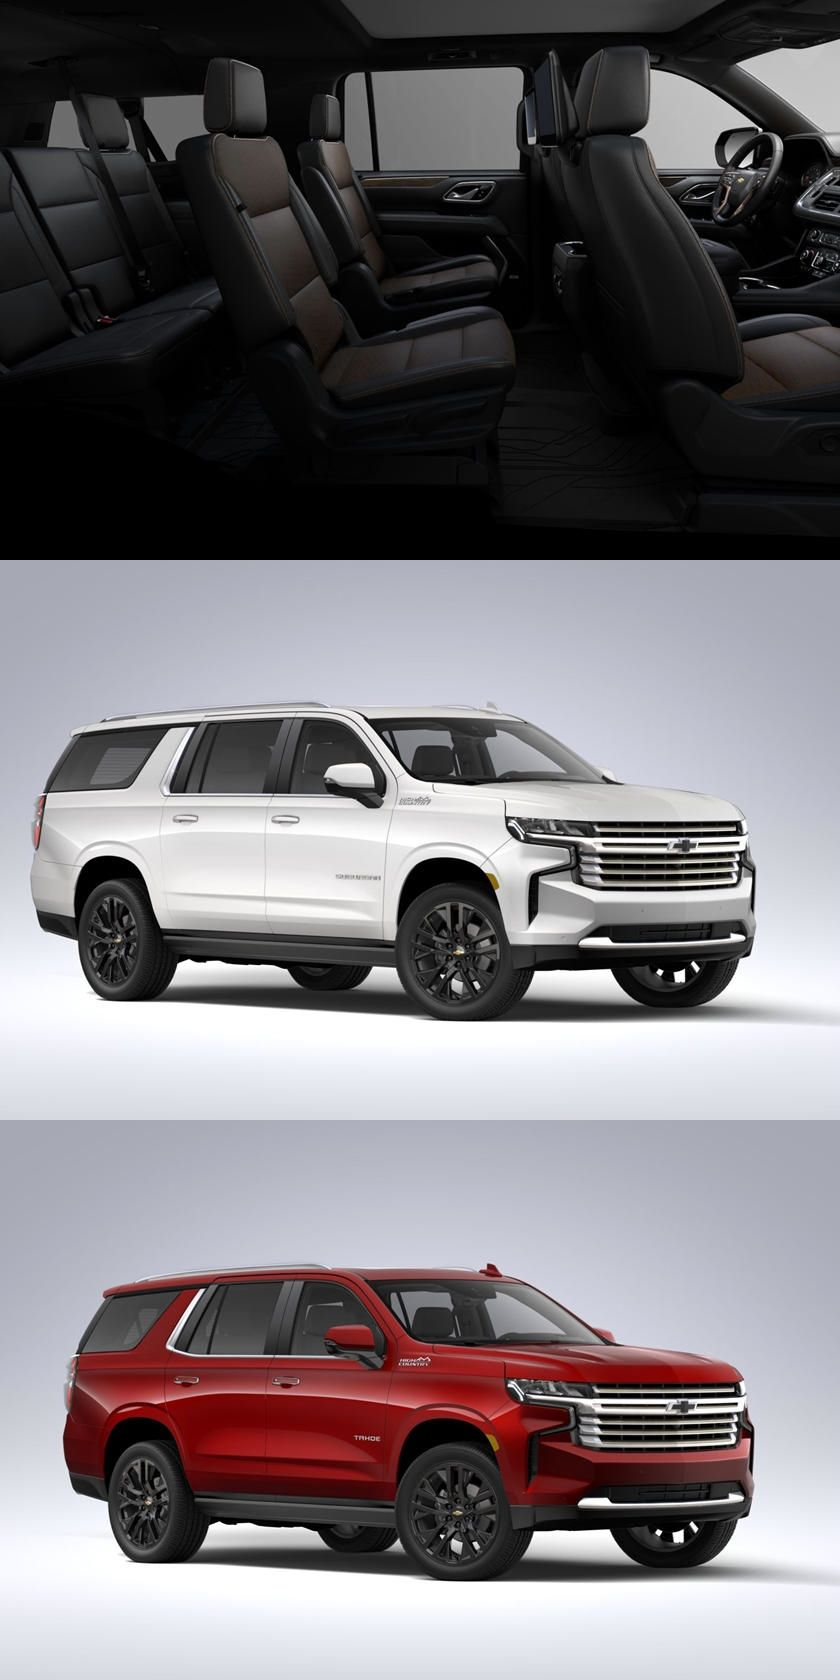 Here S How Much A Fully Loaded 2021 Chevrolet Suburban And Tahoe Will Cost Online Configurators For Chevrolet S N In 2020 Chevrolet Suburban Chevrolet Chevrolet Tahoe